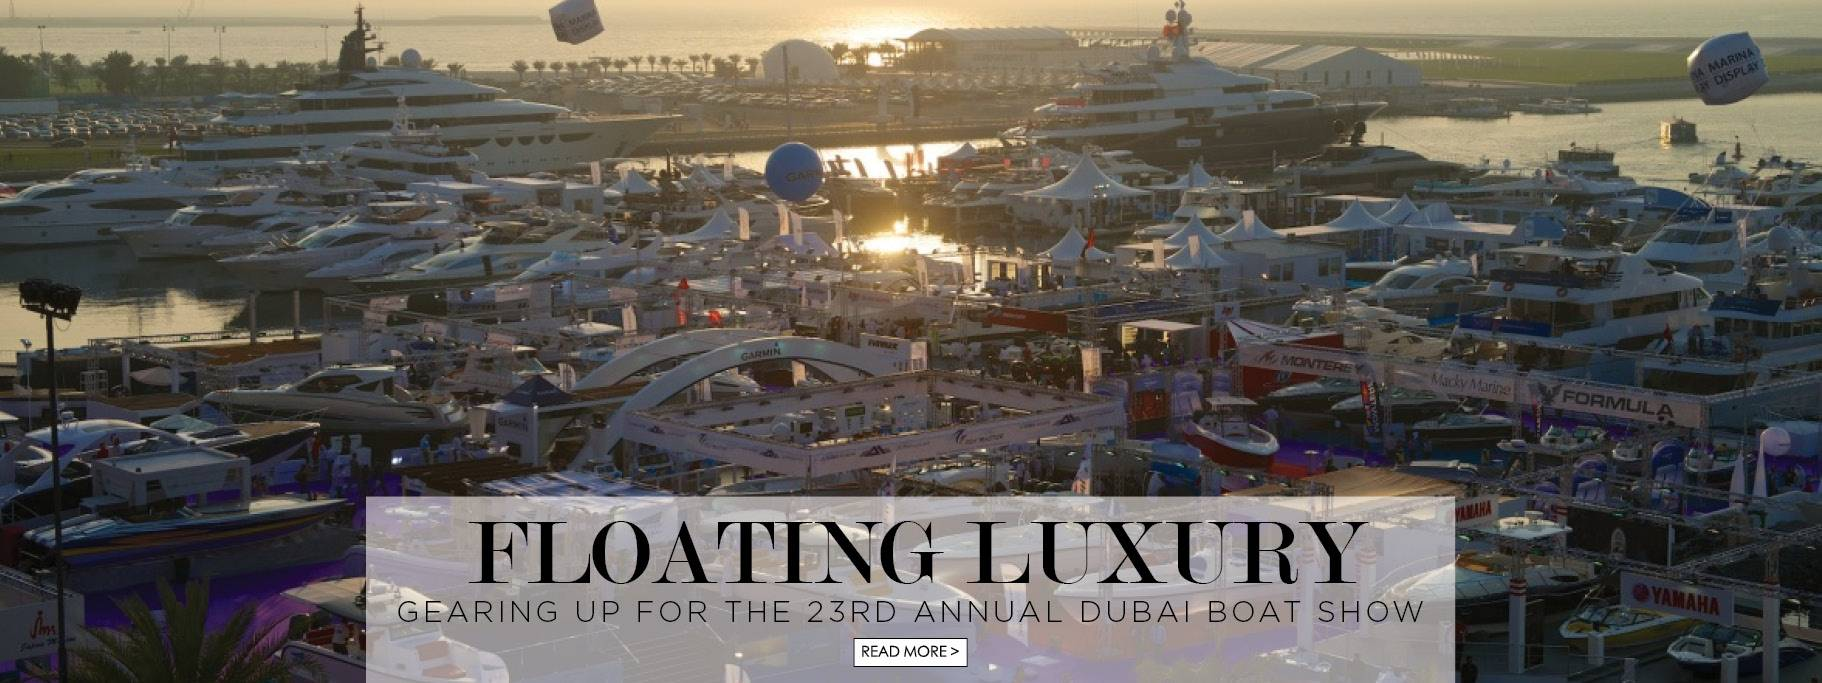 Gearing up for the Dubai Boat Show